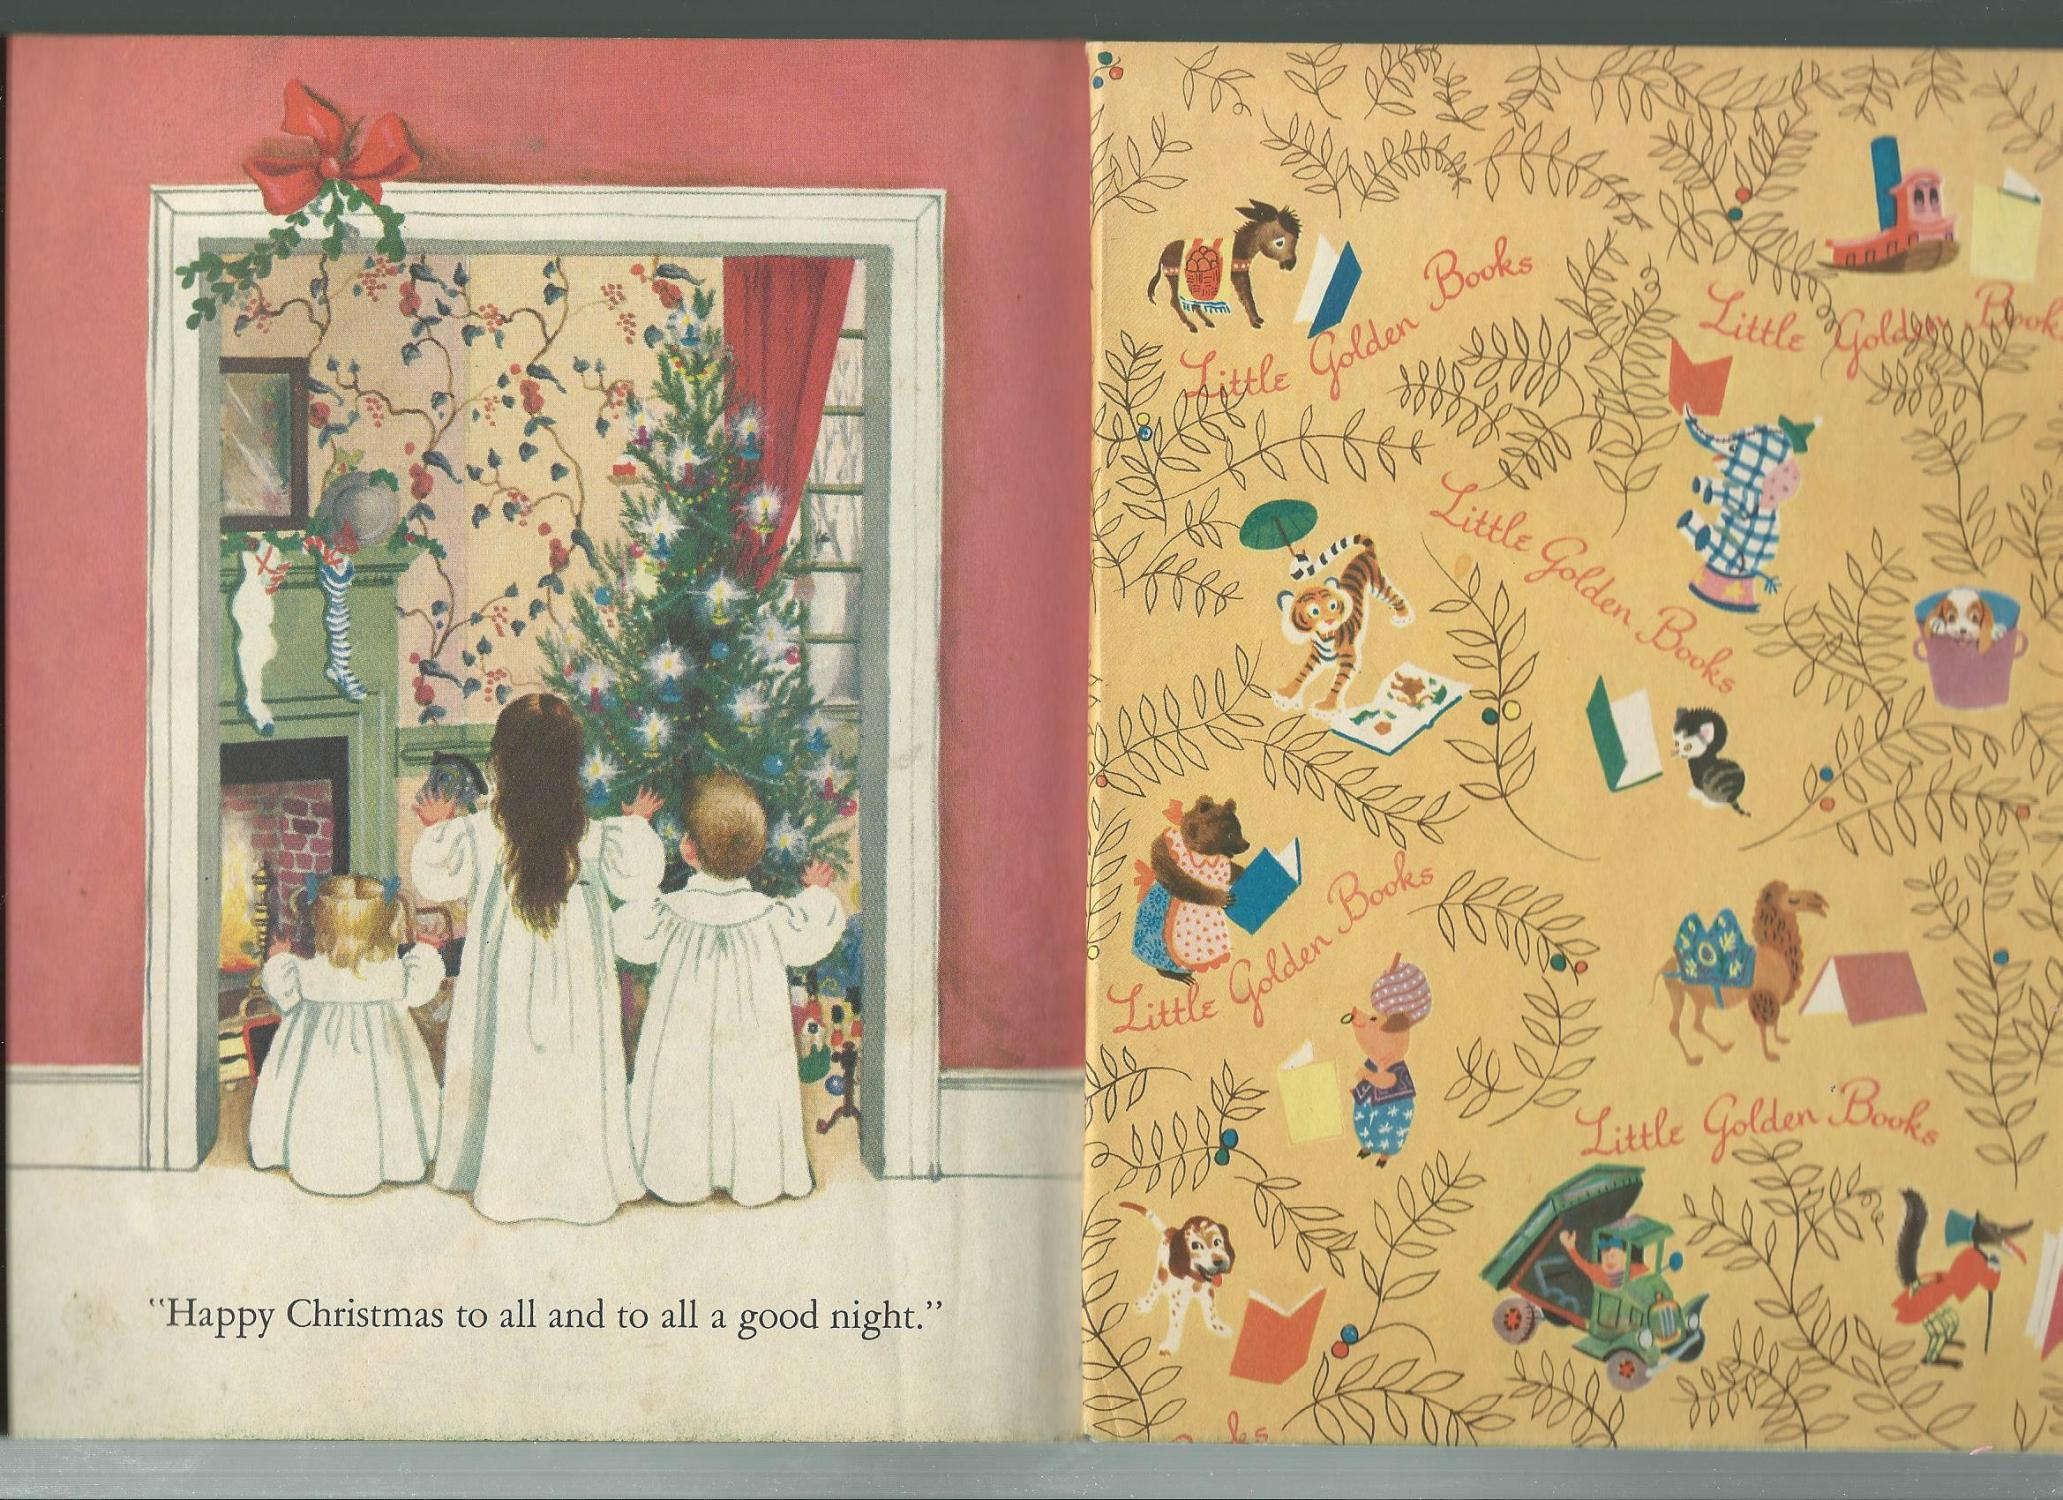 the night before christmas eloise wilkin illustby story by clement c moore